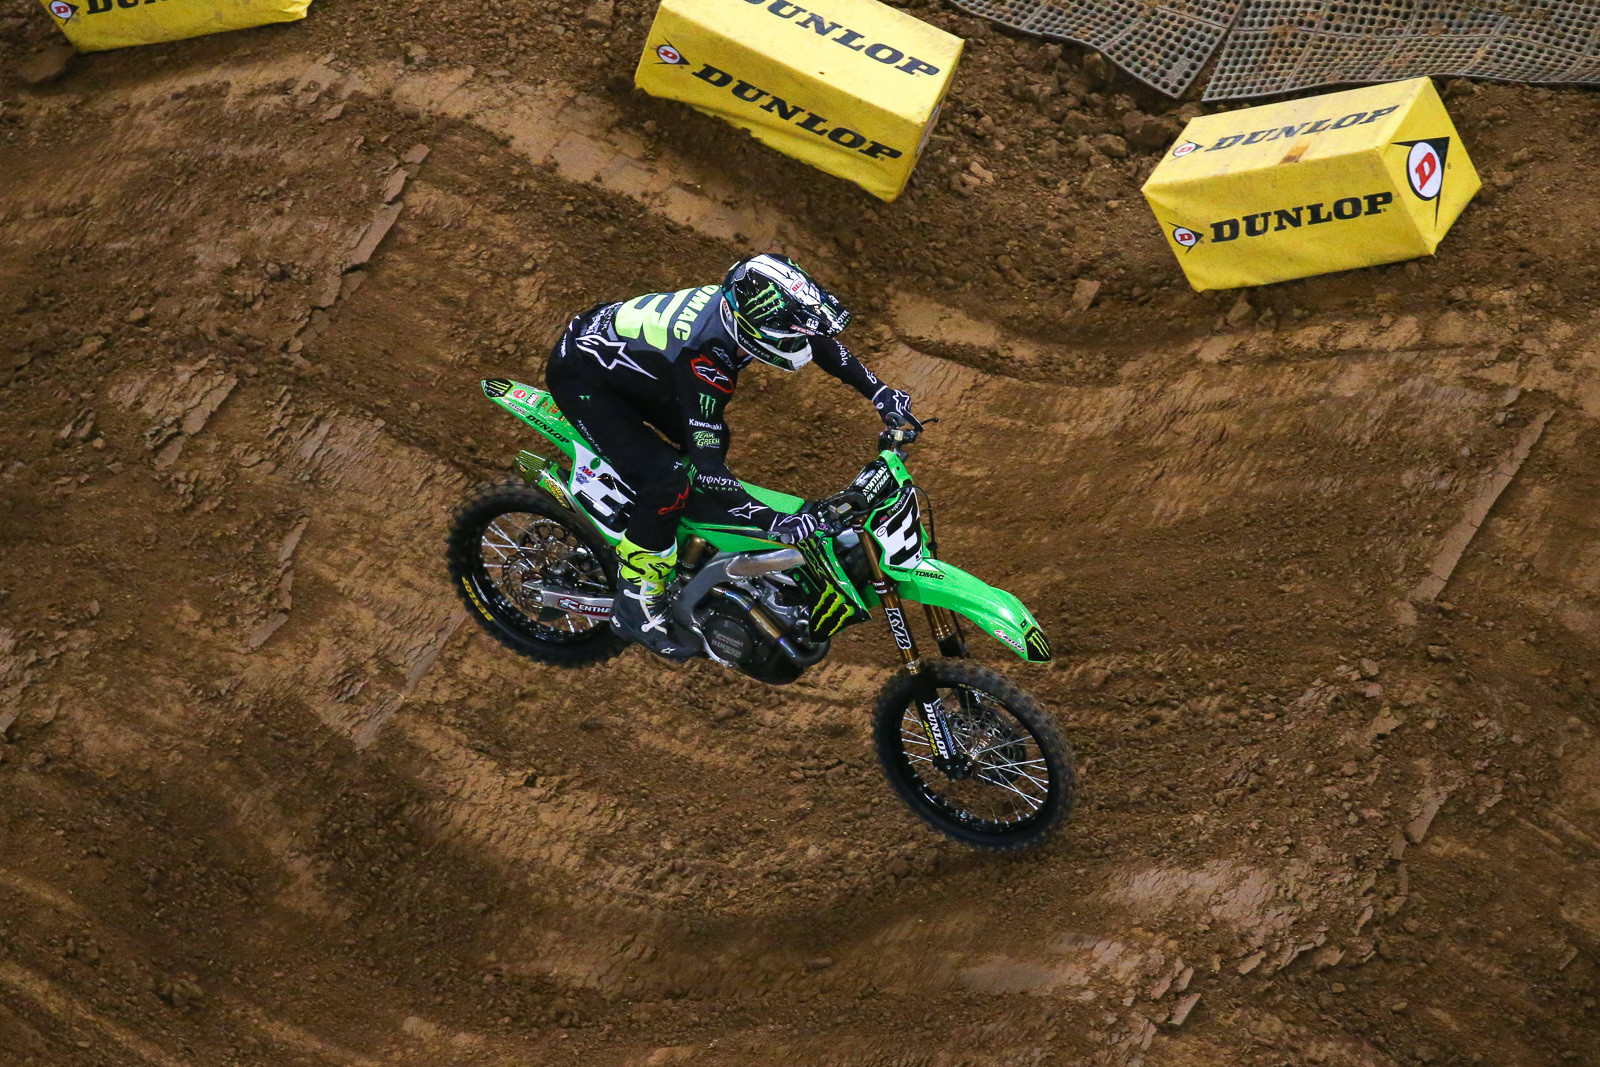 Eli Tomac was the big mover in the 450 main, jumping up eight spots.